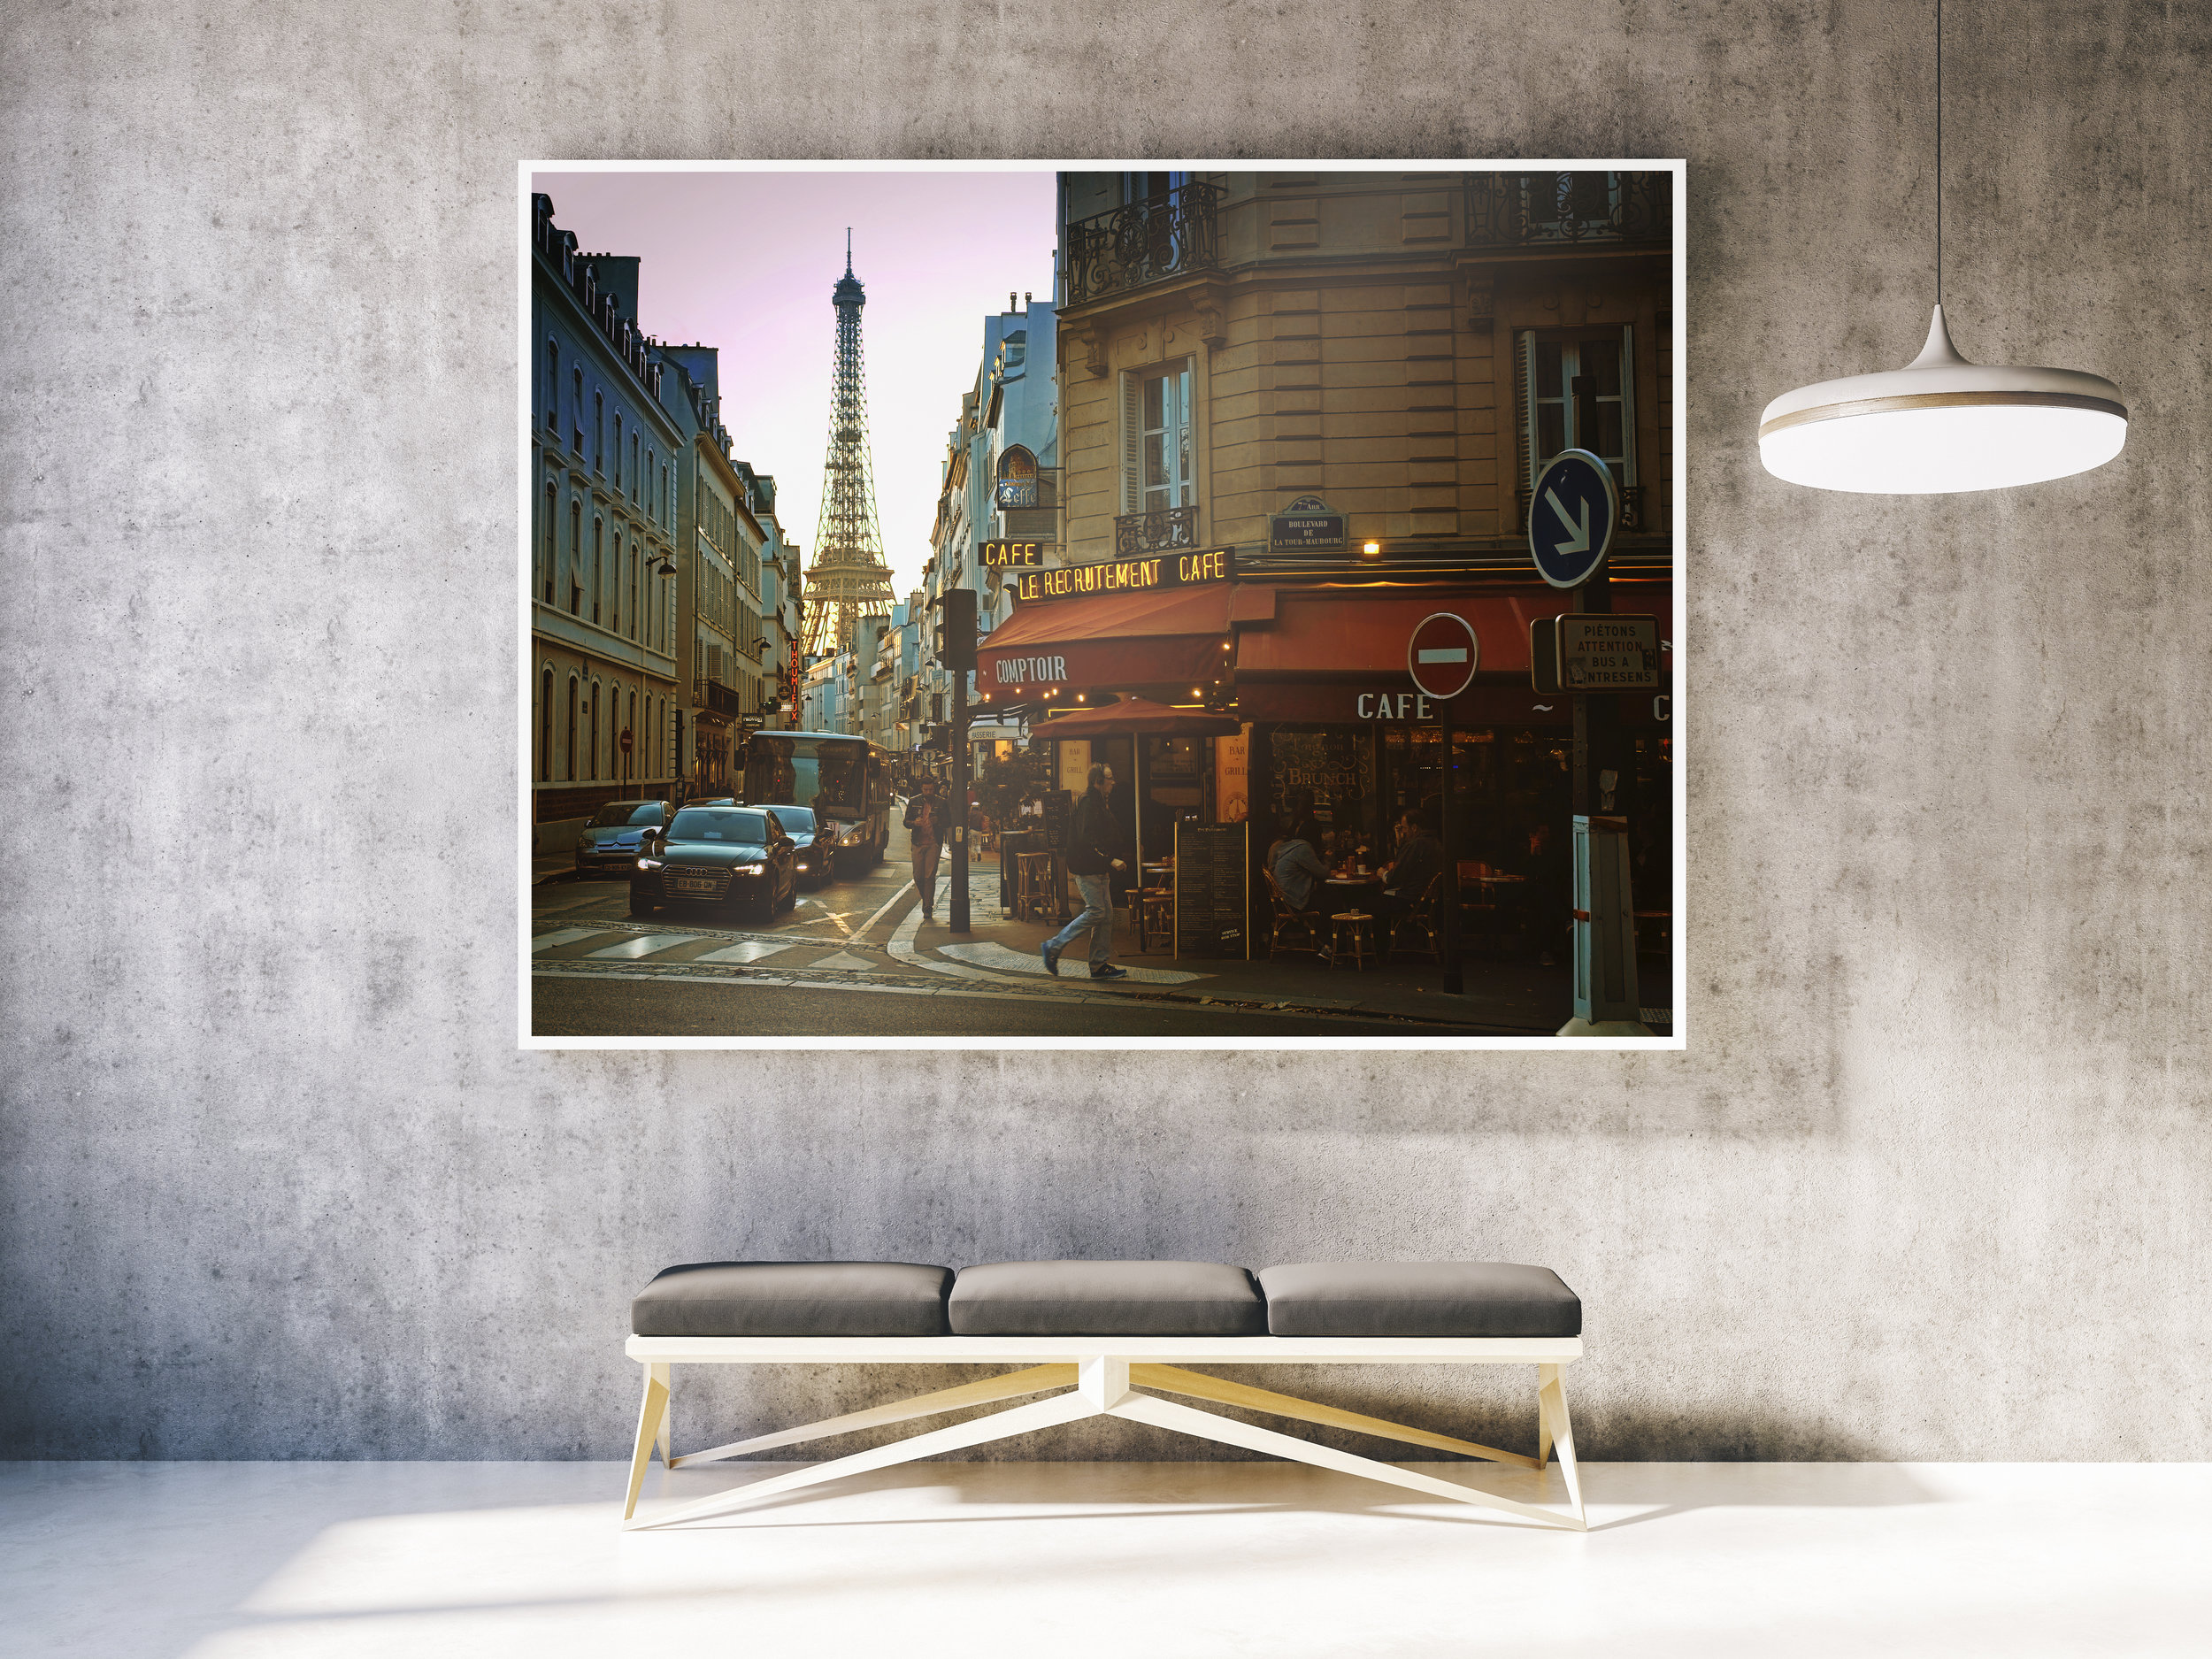 Paris Cafe frame7.jpg